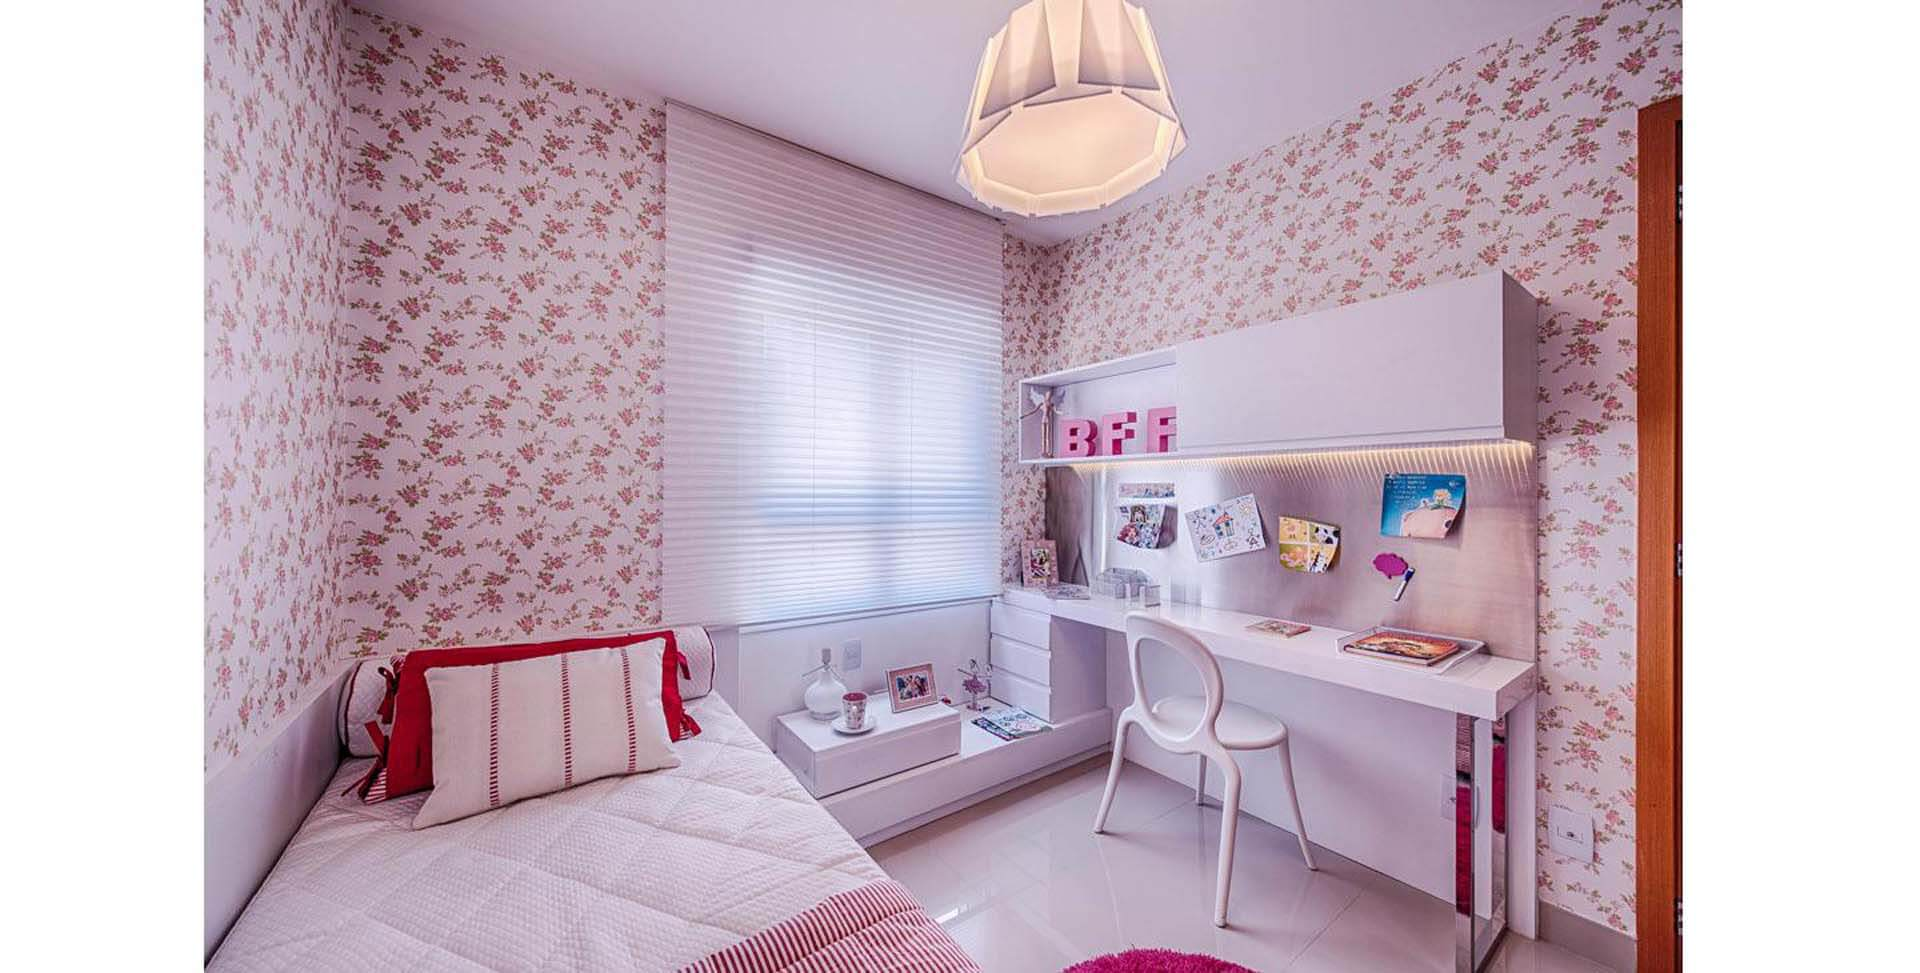 Apartamento decorado - Quarto